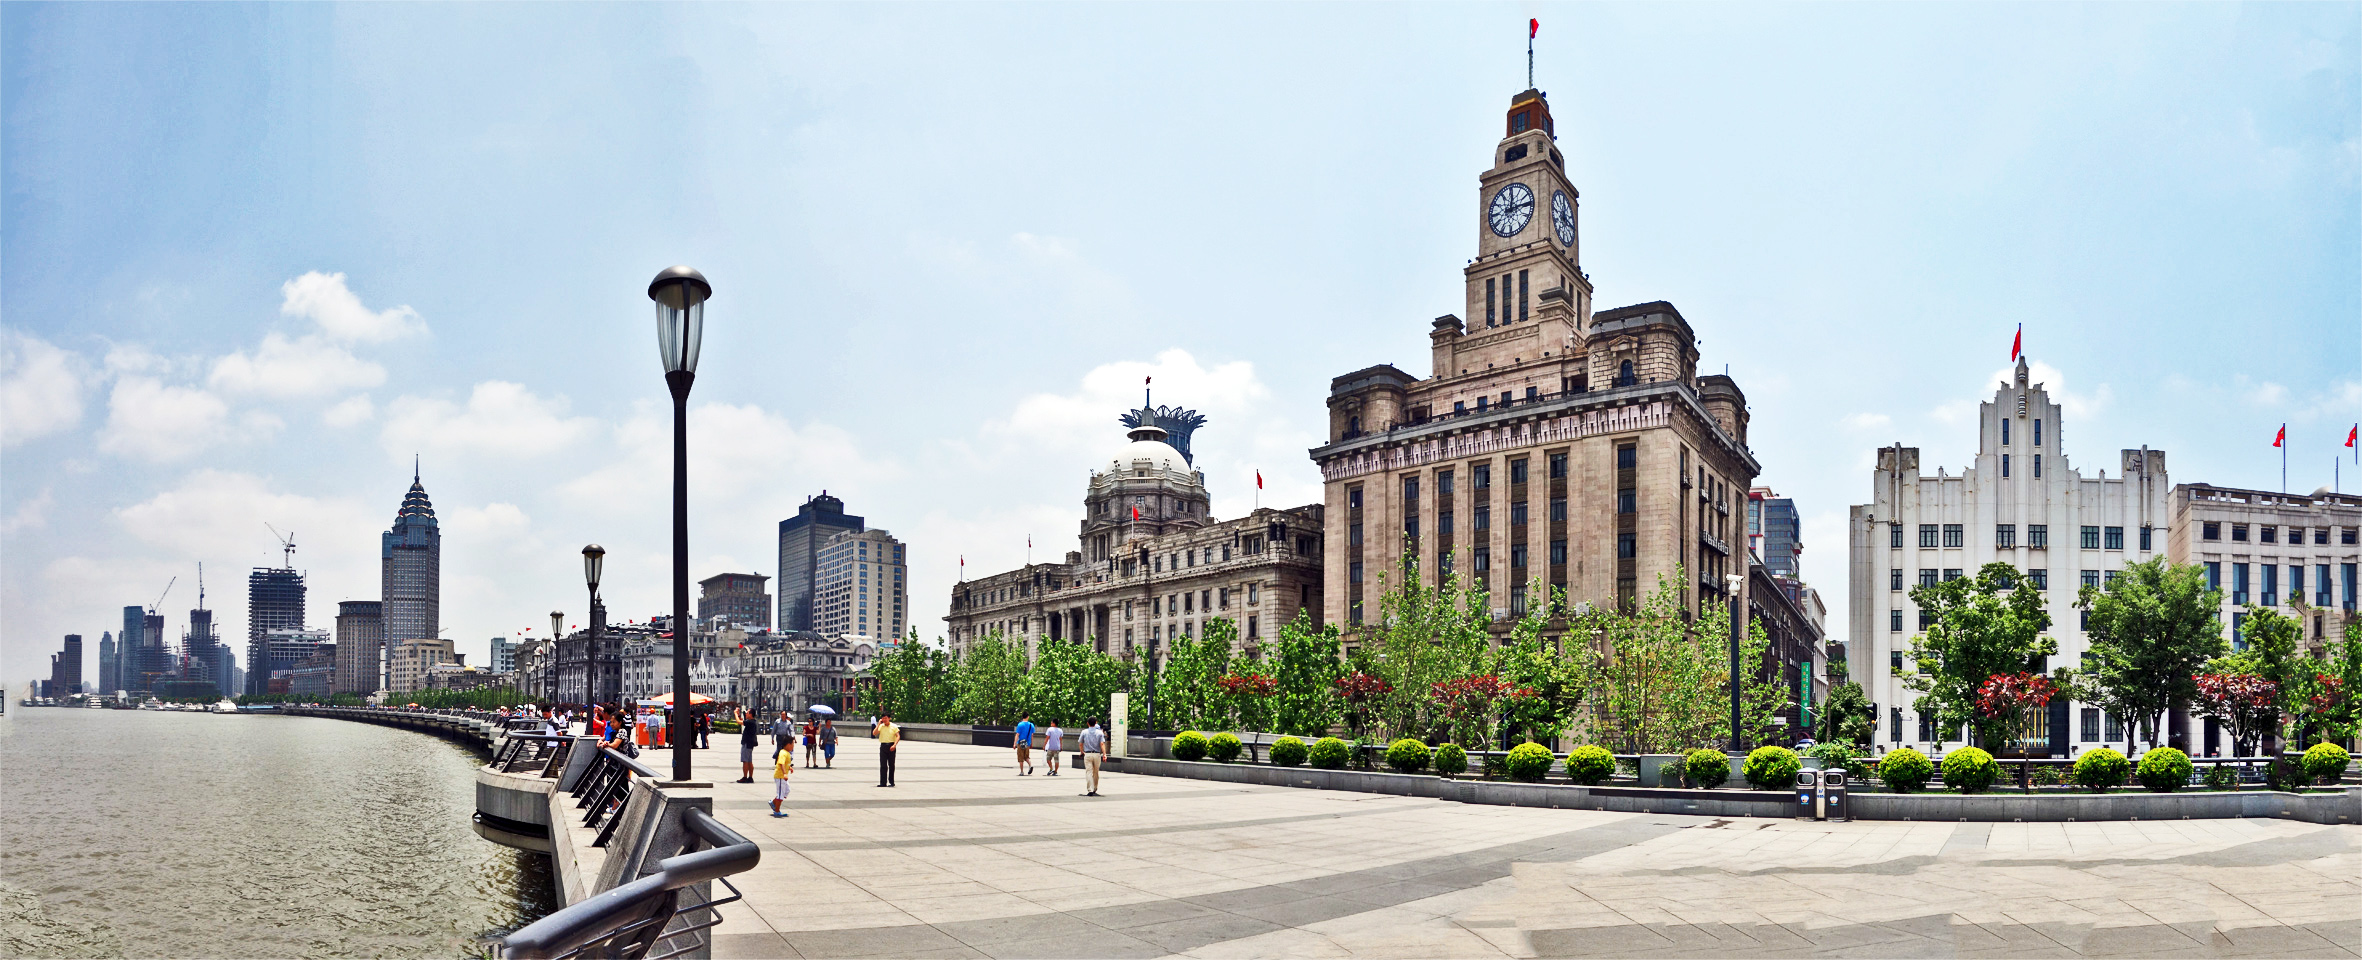 Shanghai: the Bund